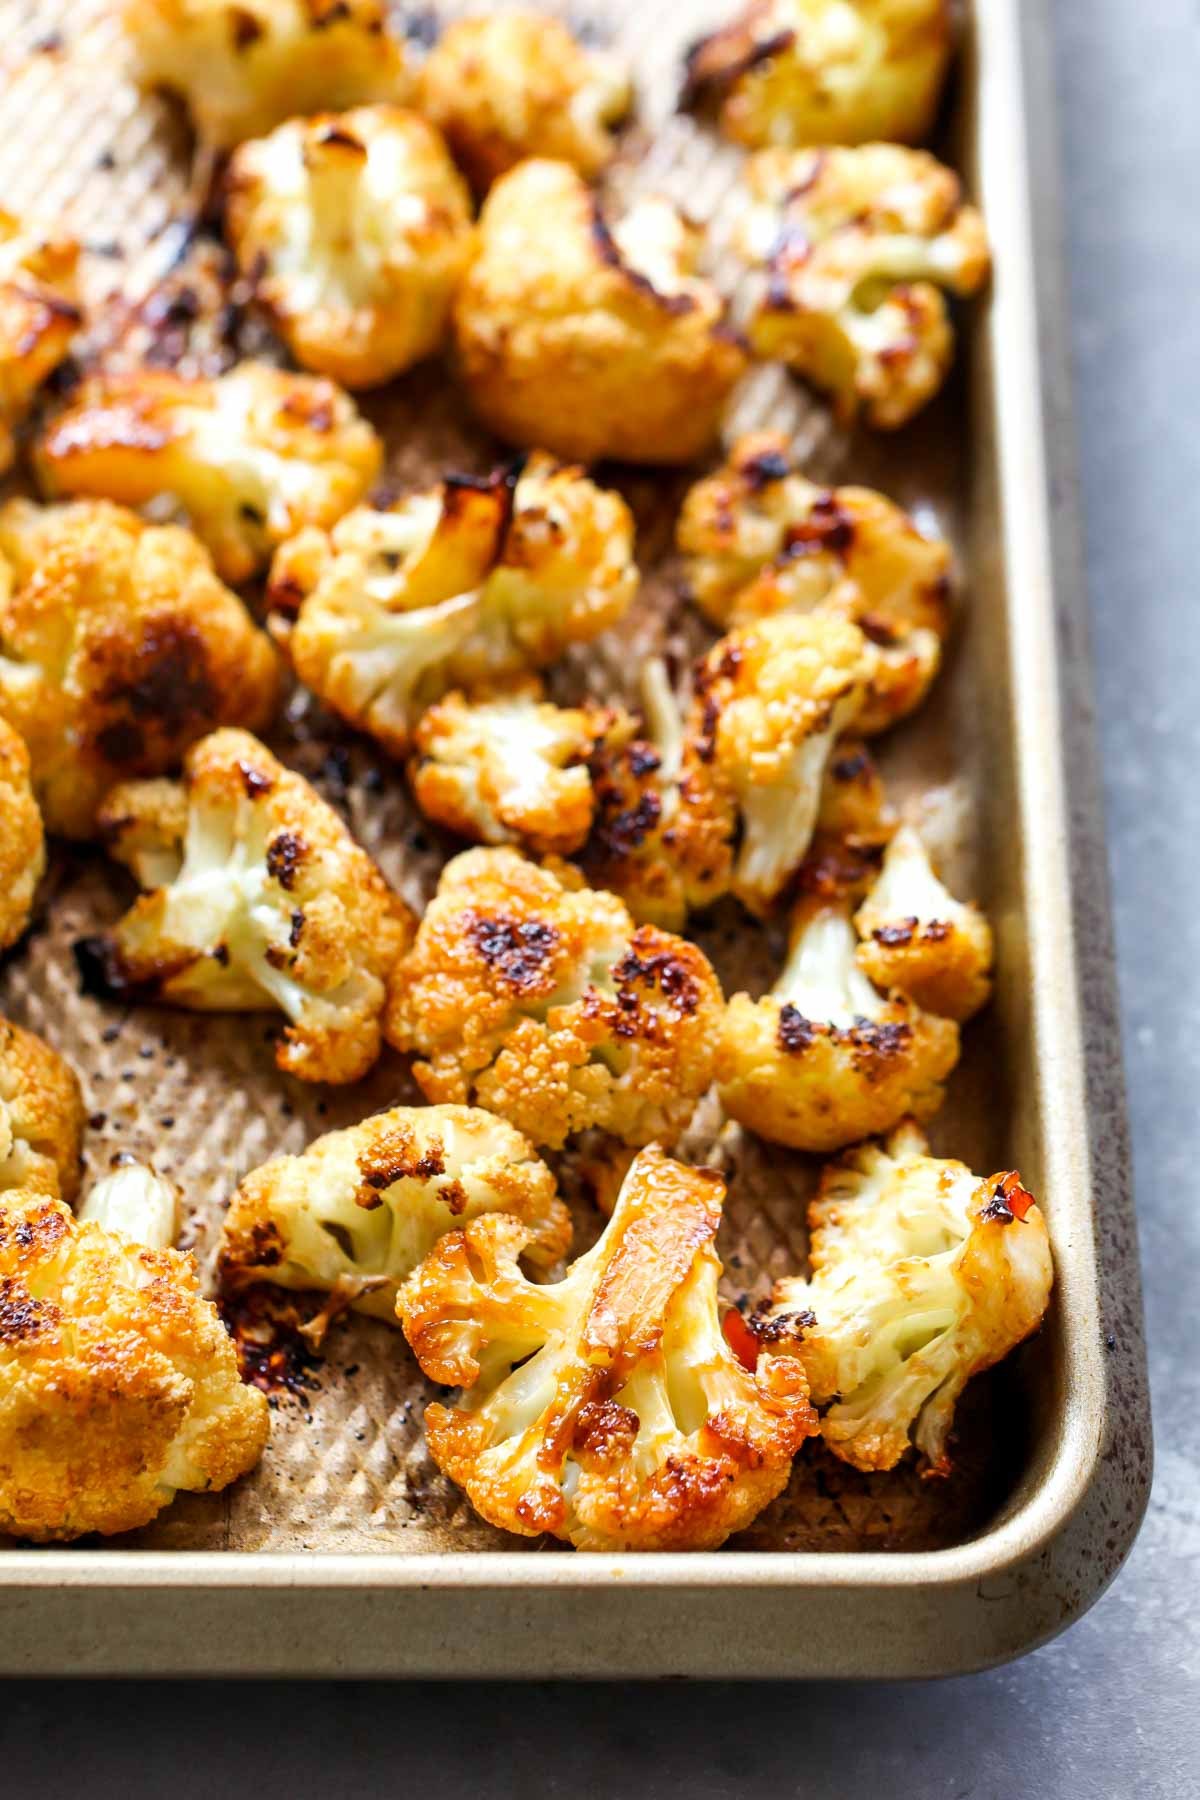 Roasted cauliflower florets on a gold baking sheet